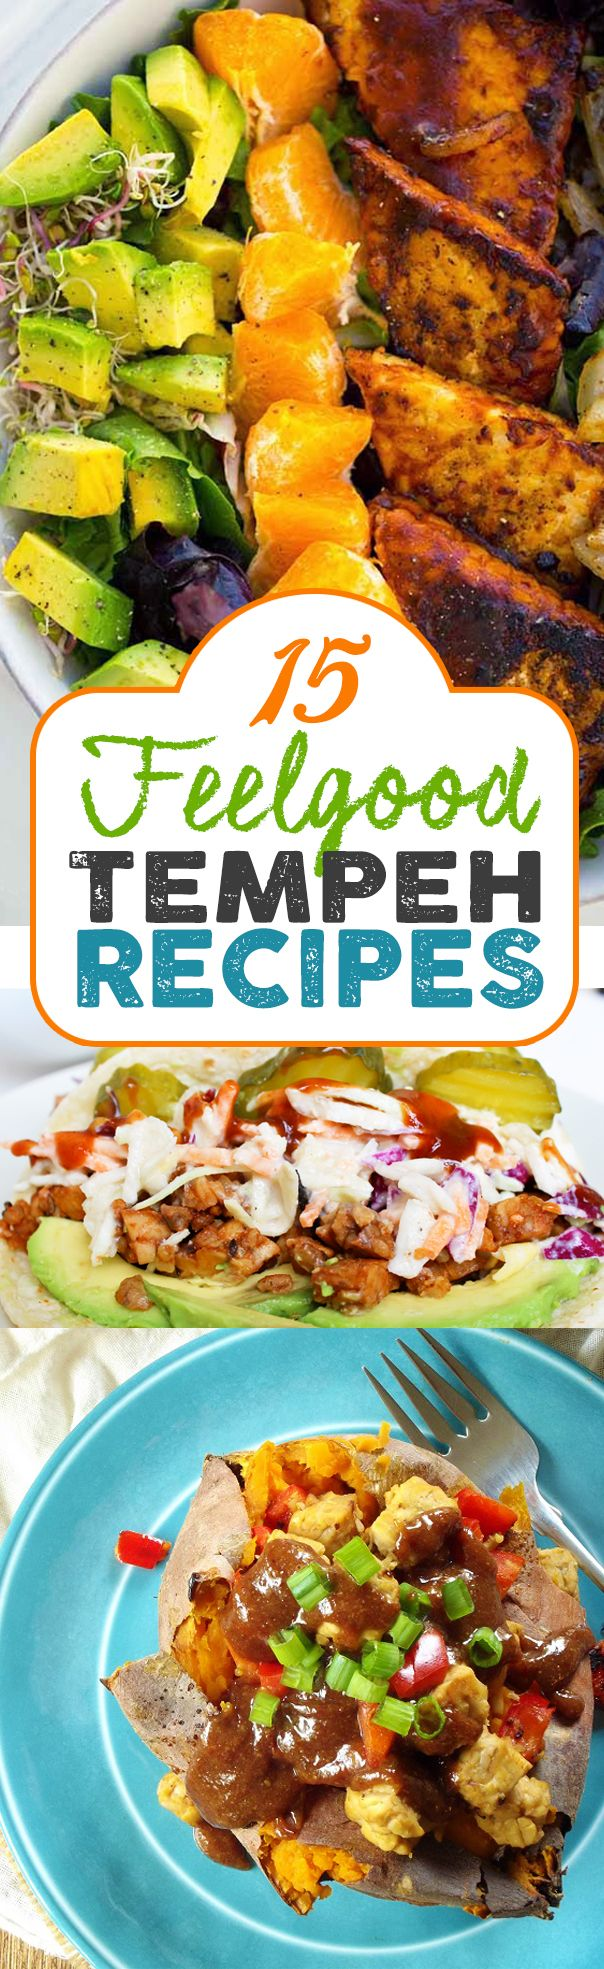 15 of the Best Vegan Tempeh Recipes! Simple, delicious! #vegan #recipes #vegetarian #veggie #recipe